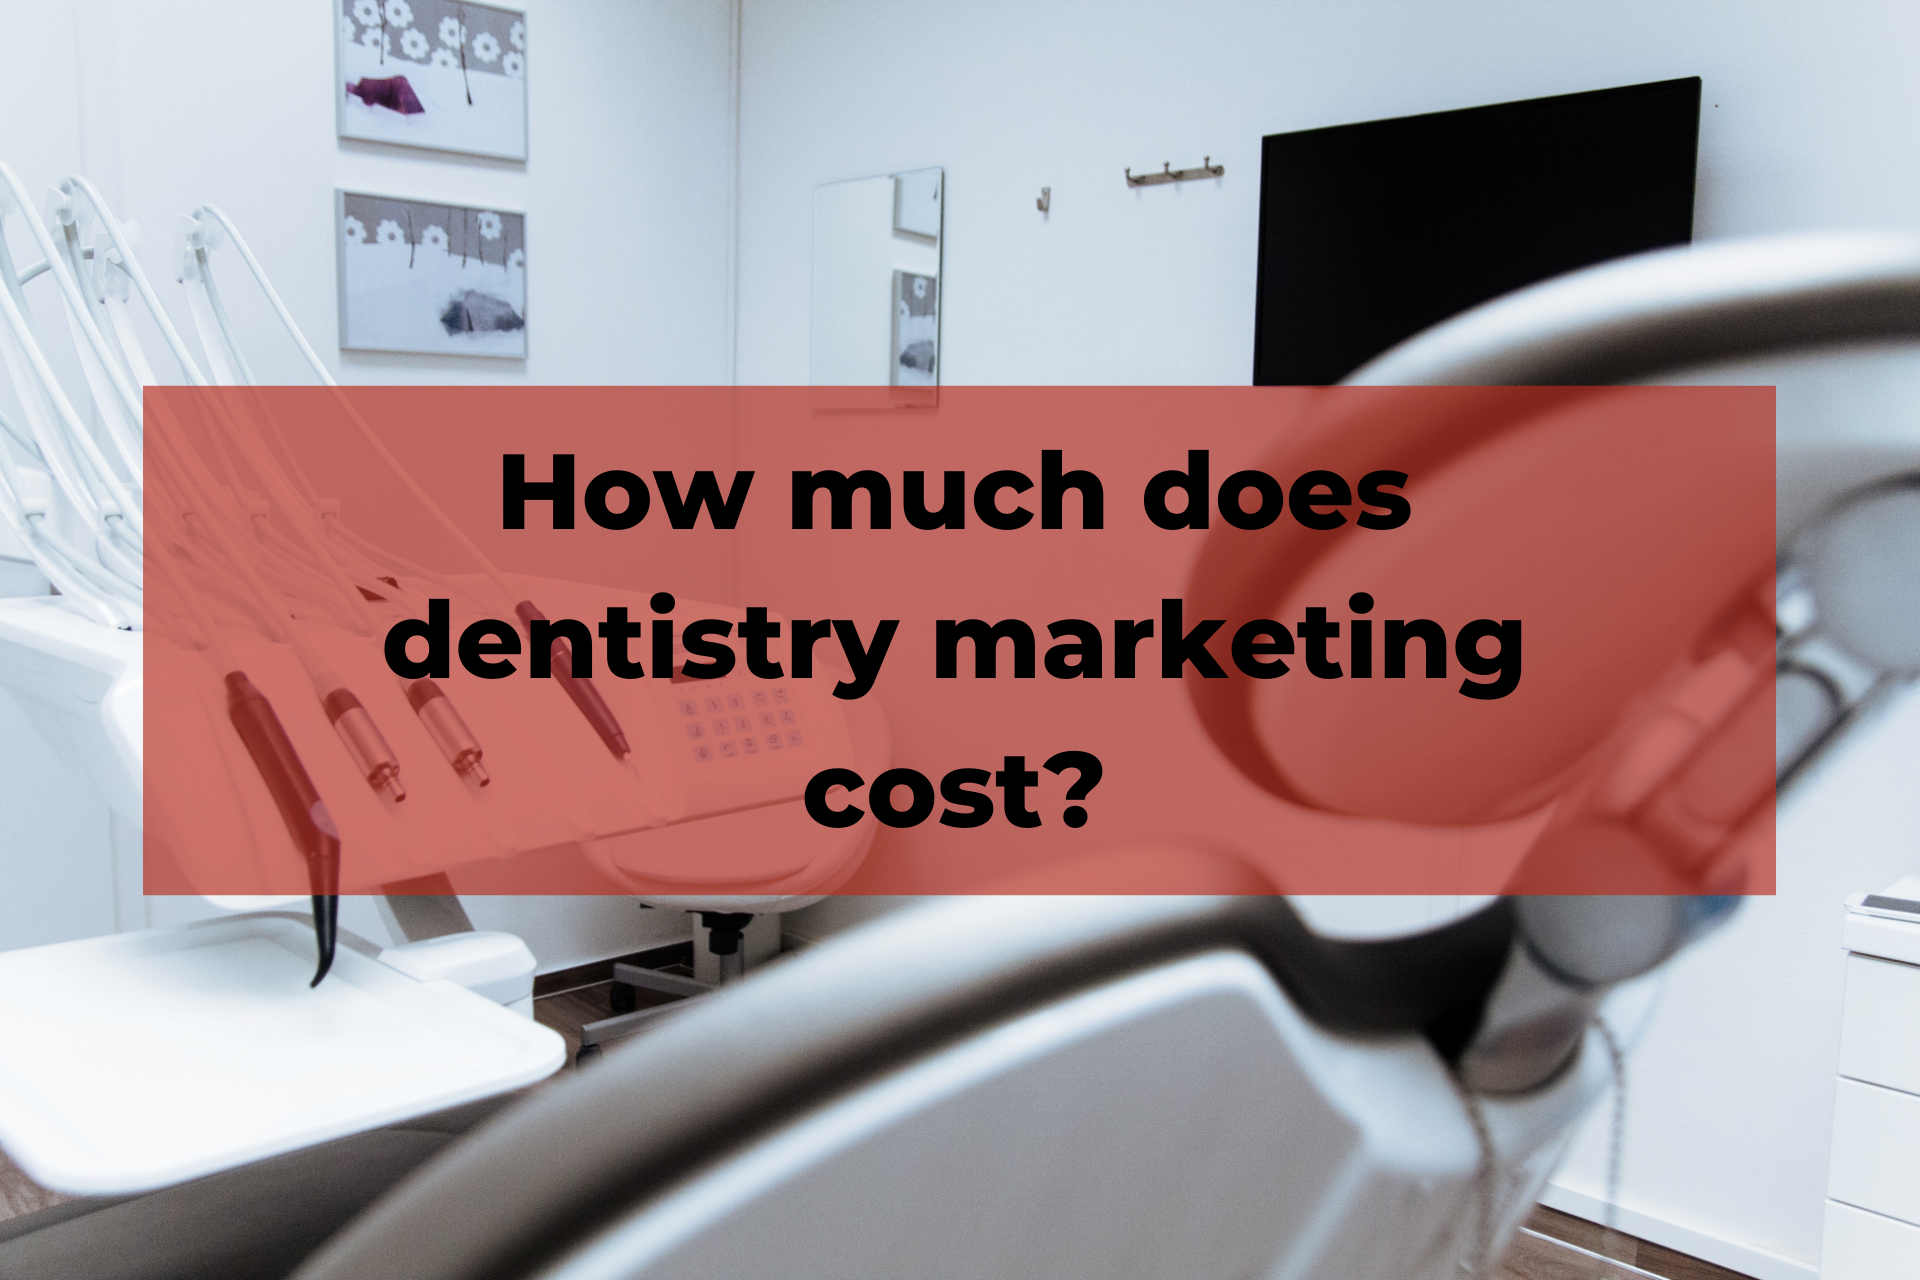 How much does dentistry marketing cost?